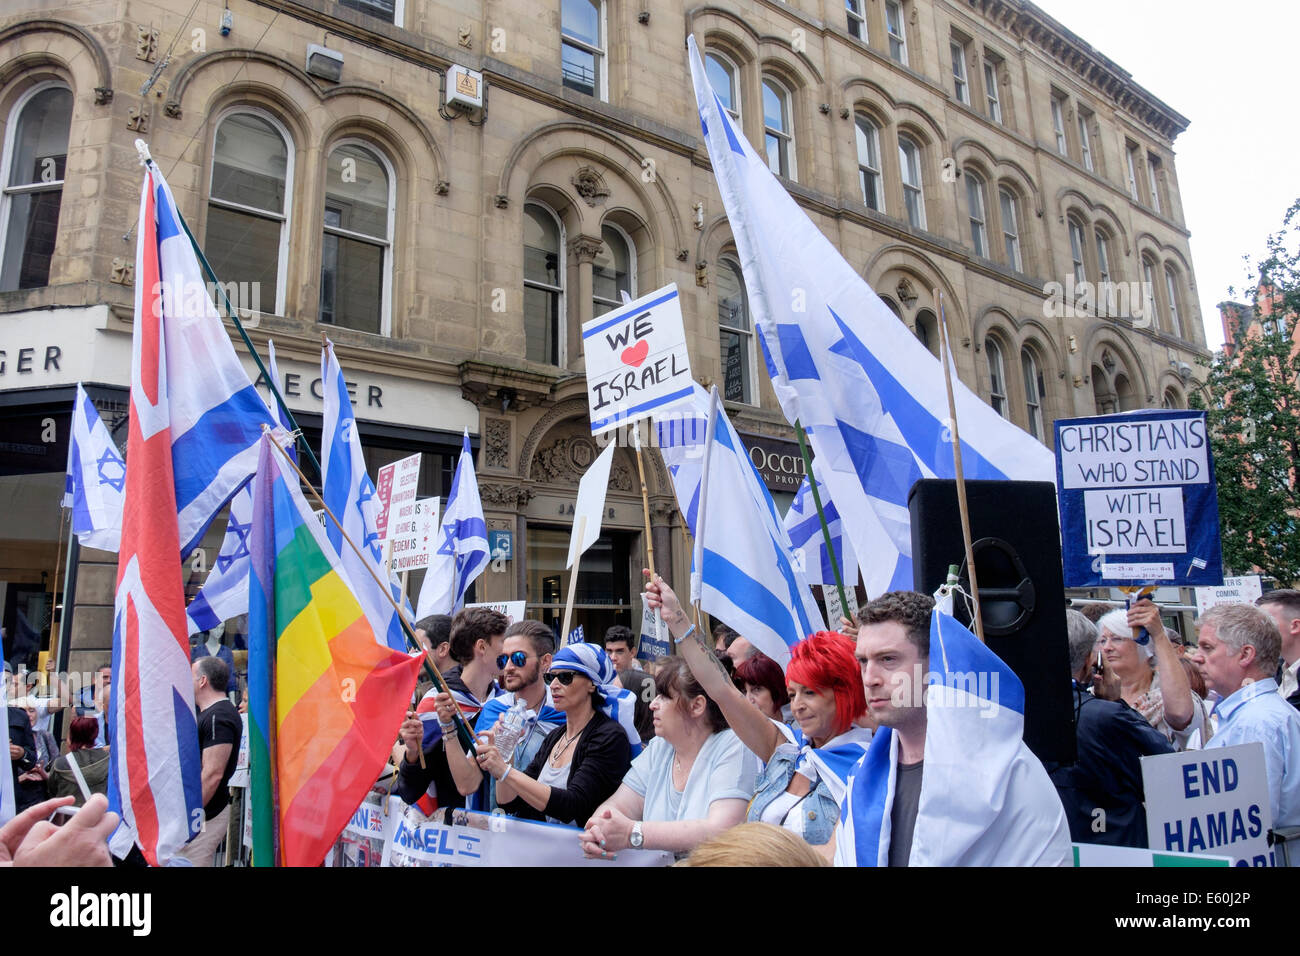 Manchester, England, UK, 9th August 2014. Pro-Israeli and Antisemitism demonstrators in King Street outside a Jewish - Stock Image